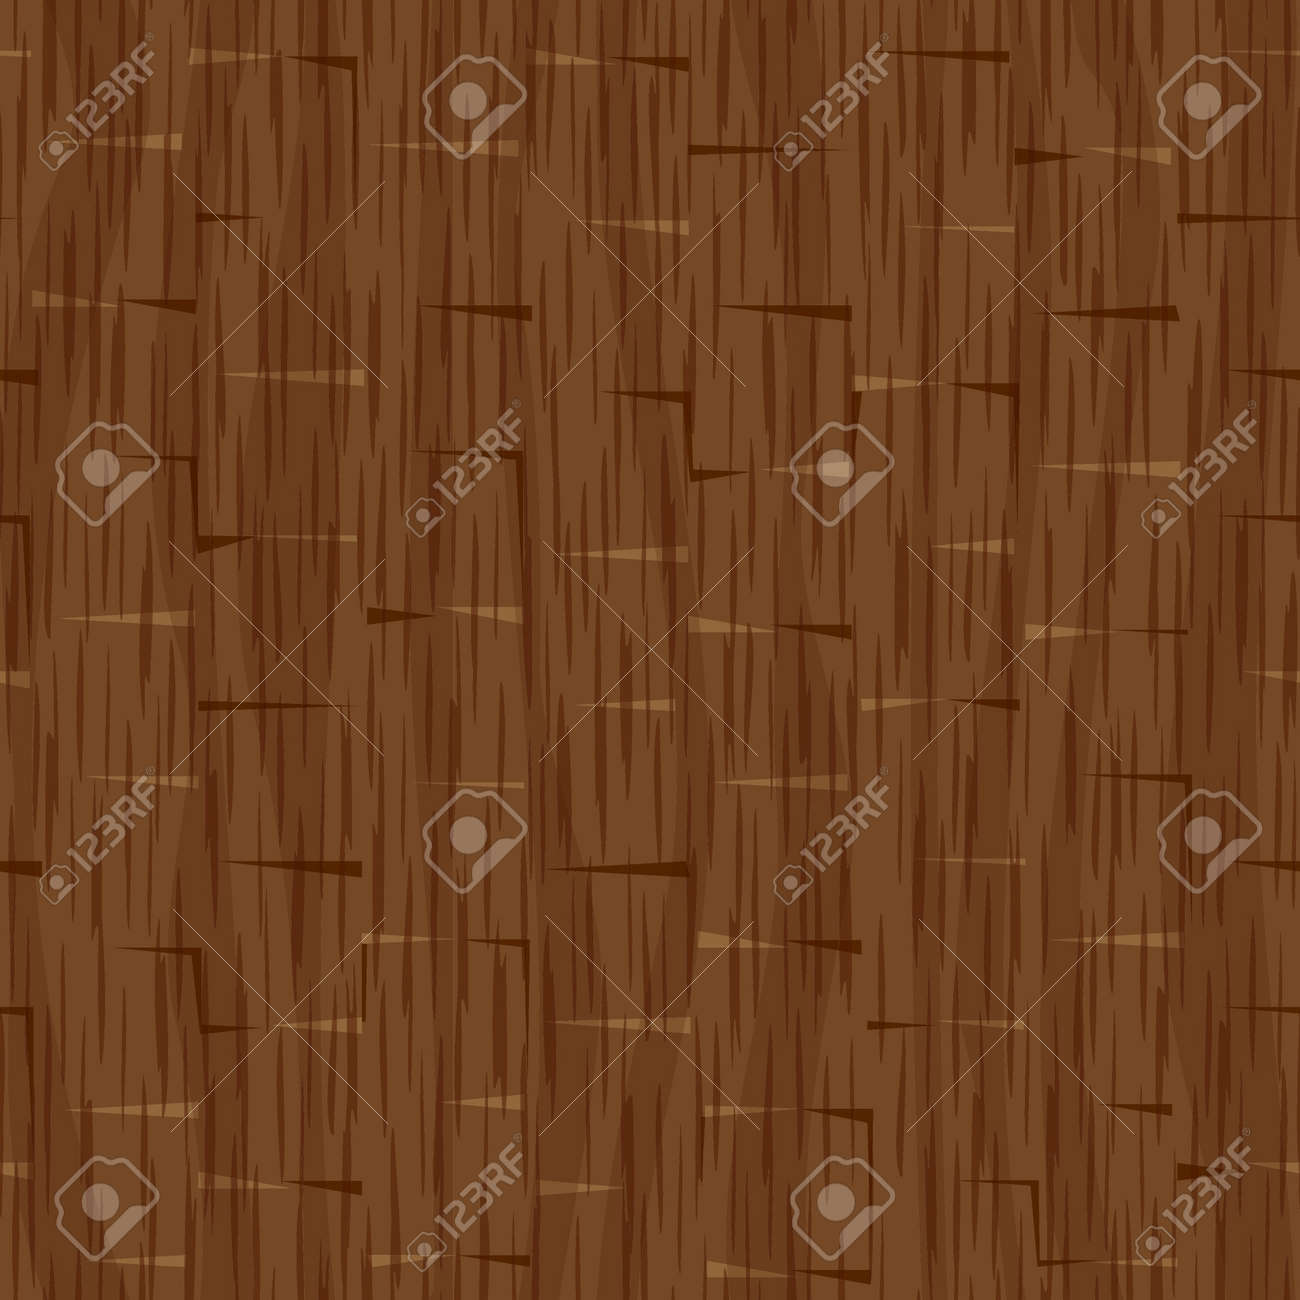 Seamless Wood Panel Wall Texture Background Stock Vector